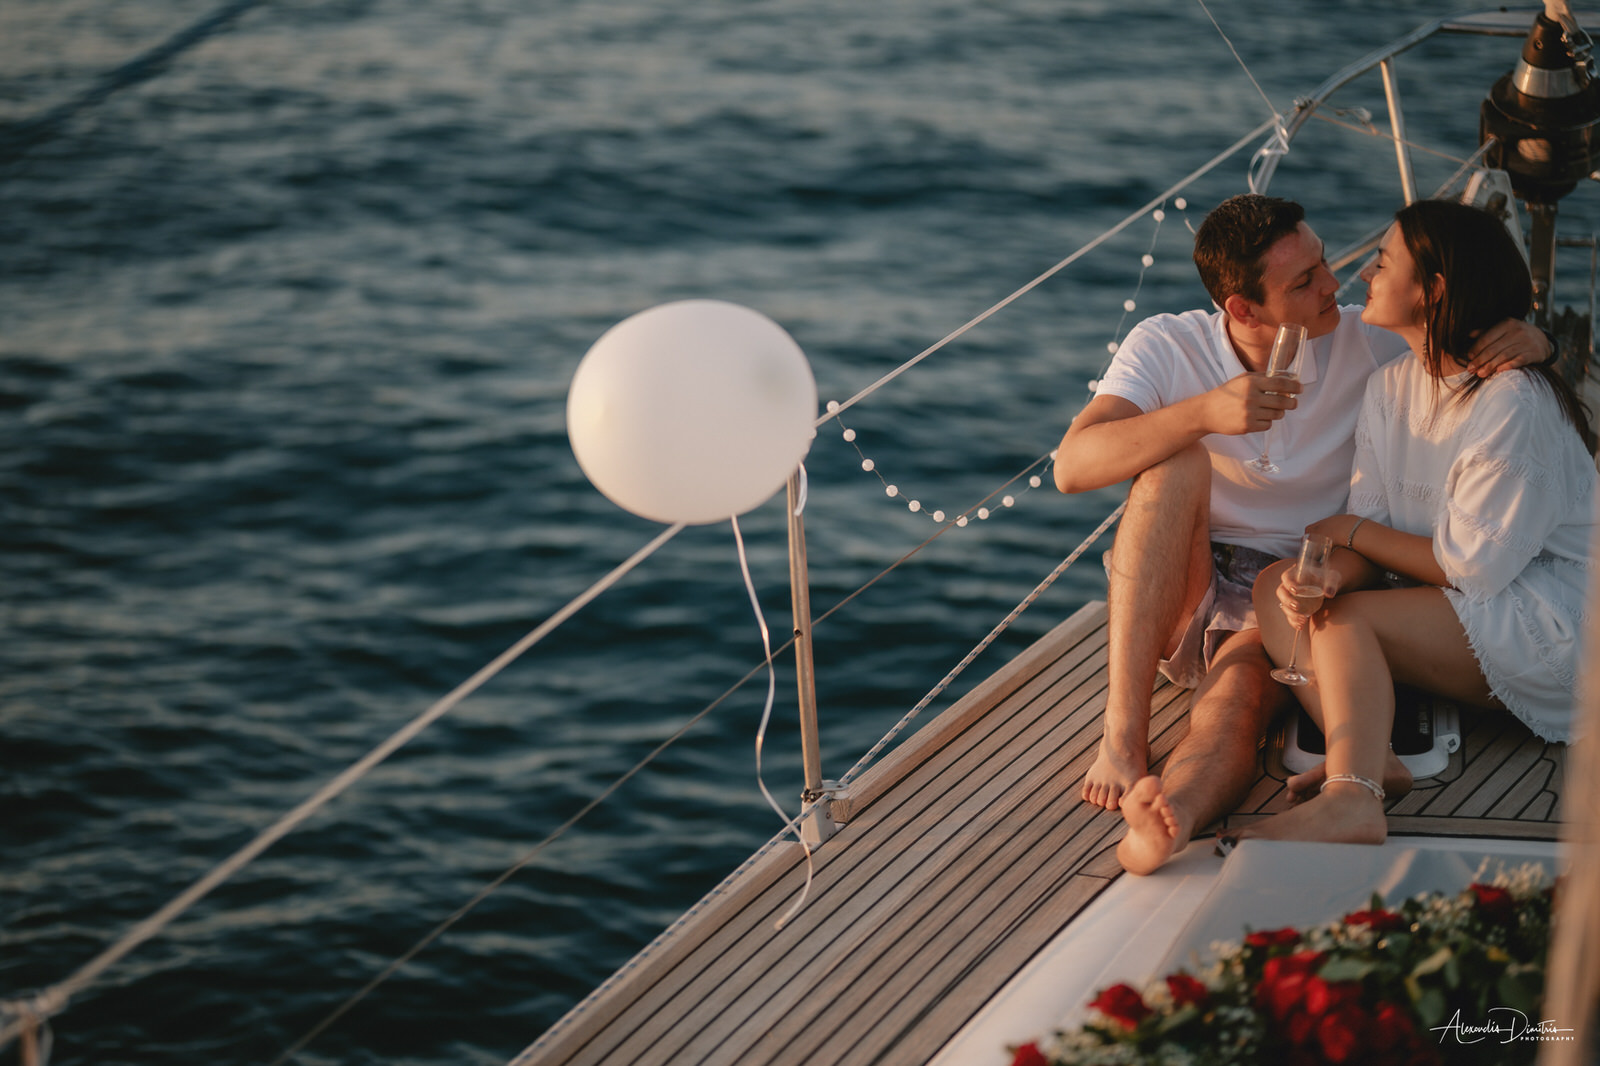 PROPOSAL OF MARRIAGE IN BOAT // alexoudis photography